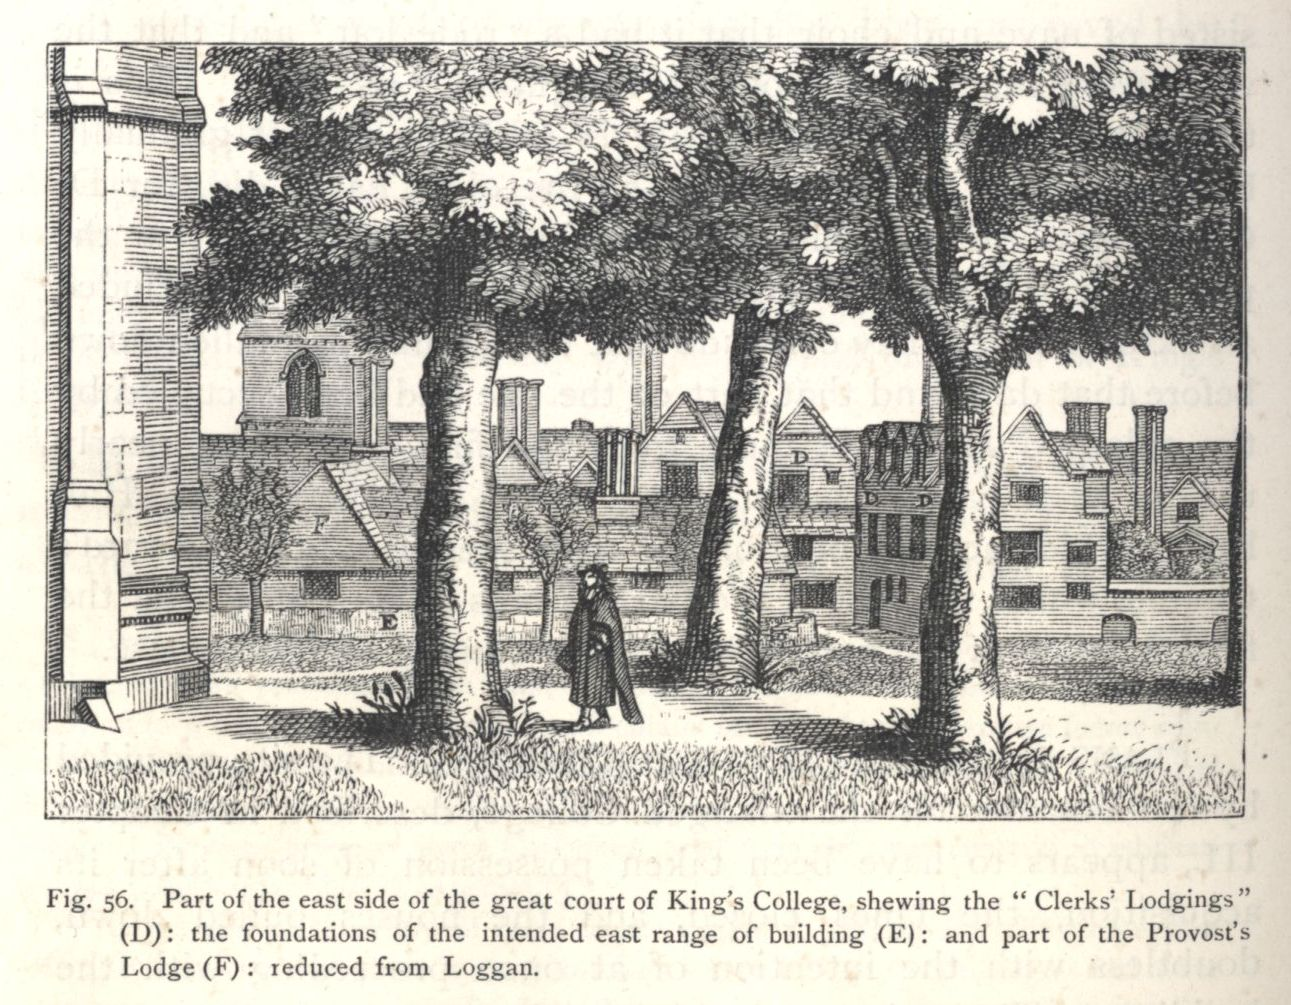 Part of the east side of the great court of King's College, showing the Clerks' Lodgings and part of the Provost's Lodge, reduced from Loggan. [Willis and Clark, vol. 1, p. 552, fig. 56]